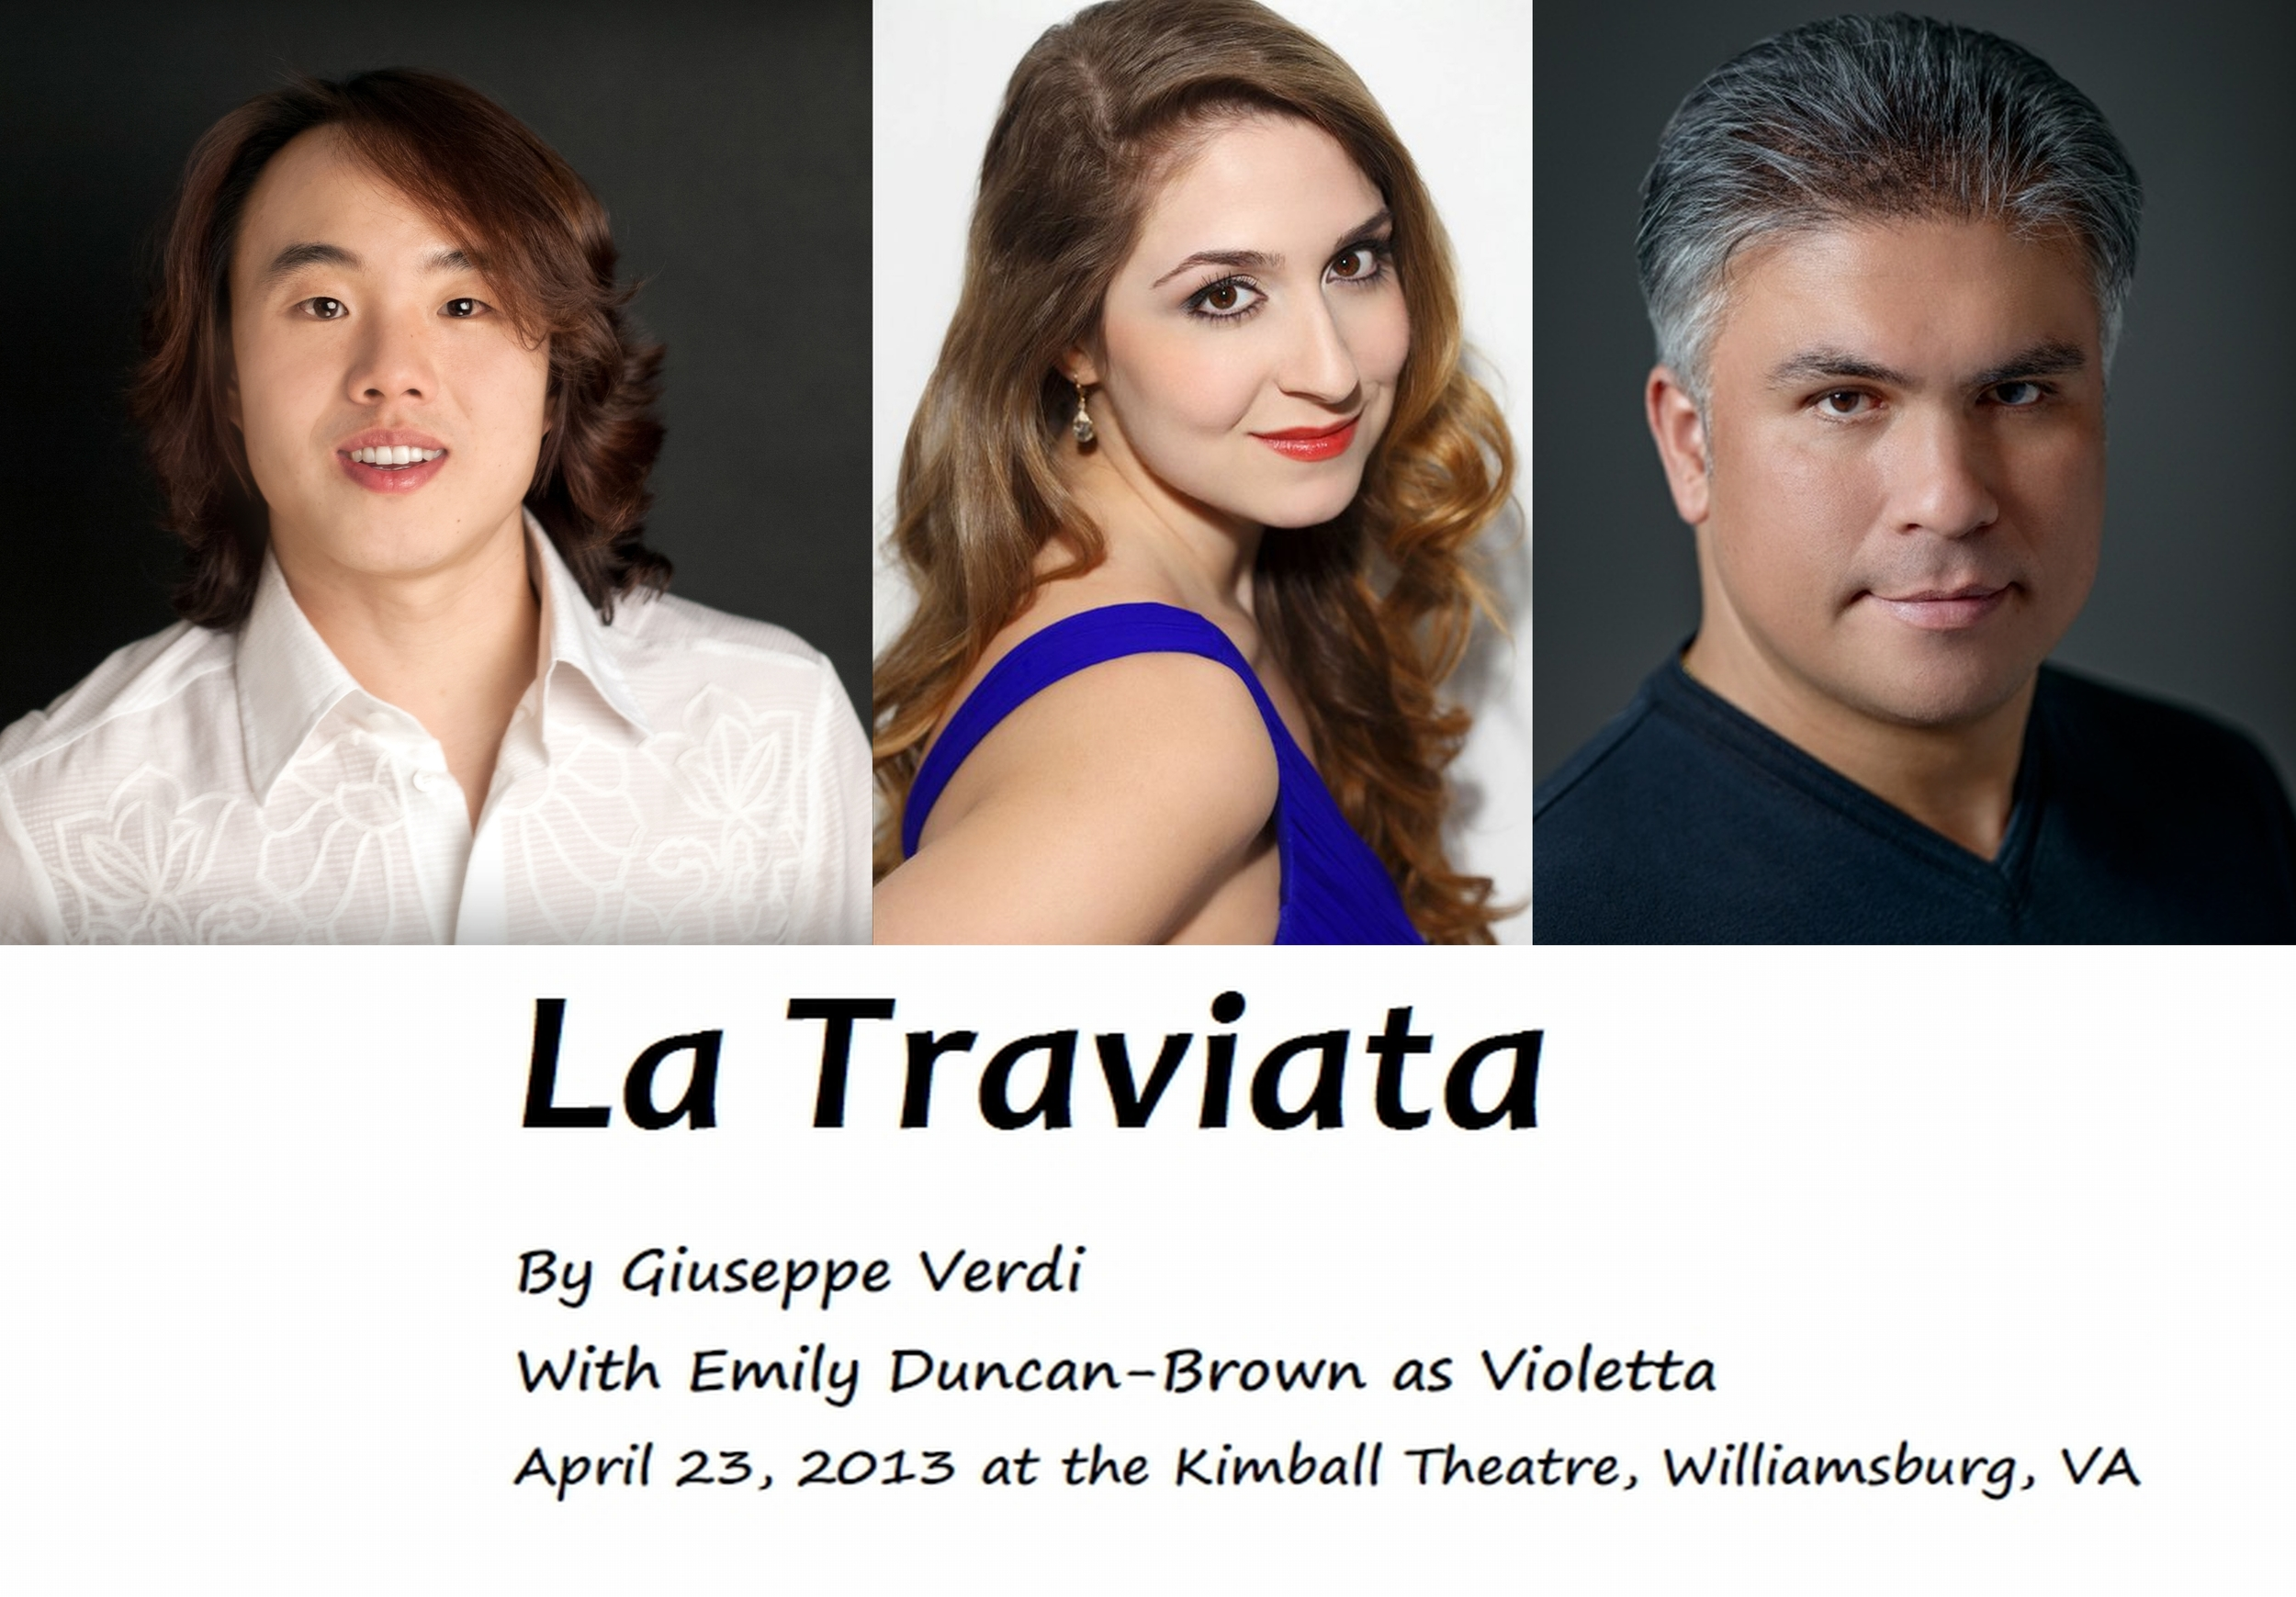 traviata for facebook posed.jpg